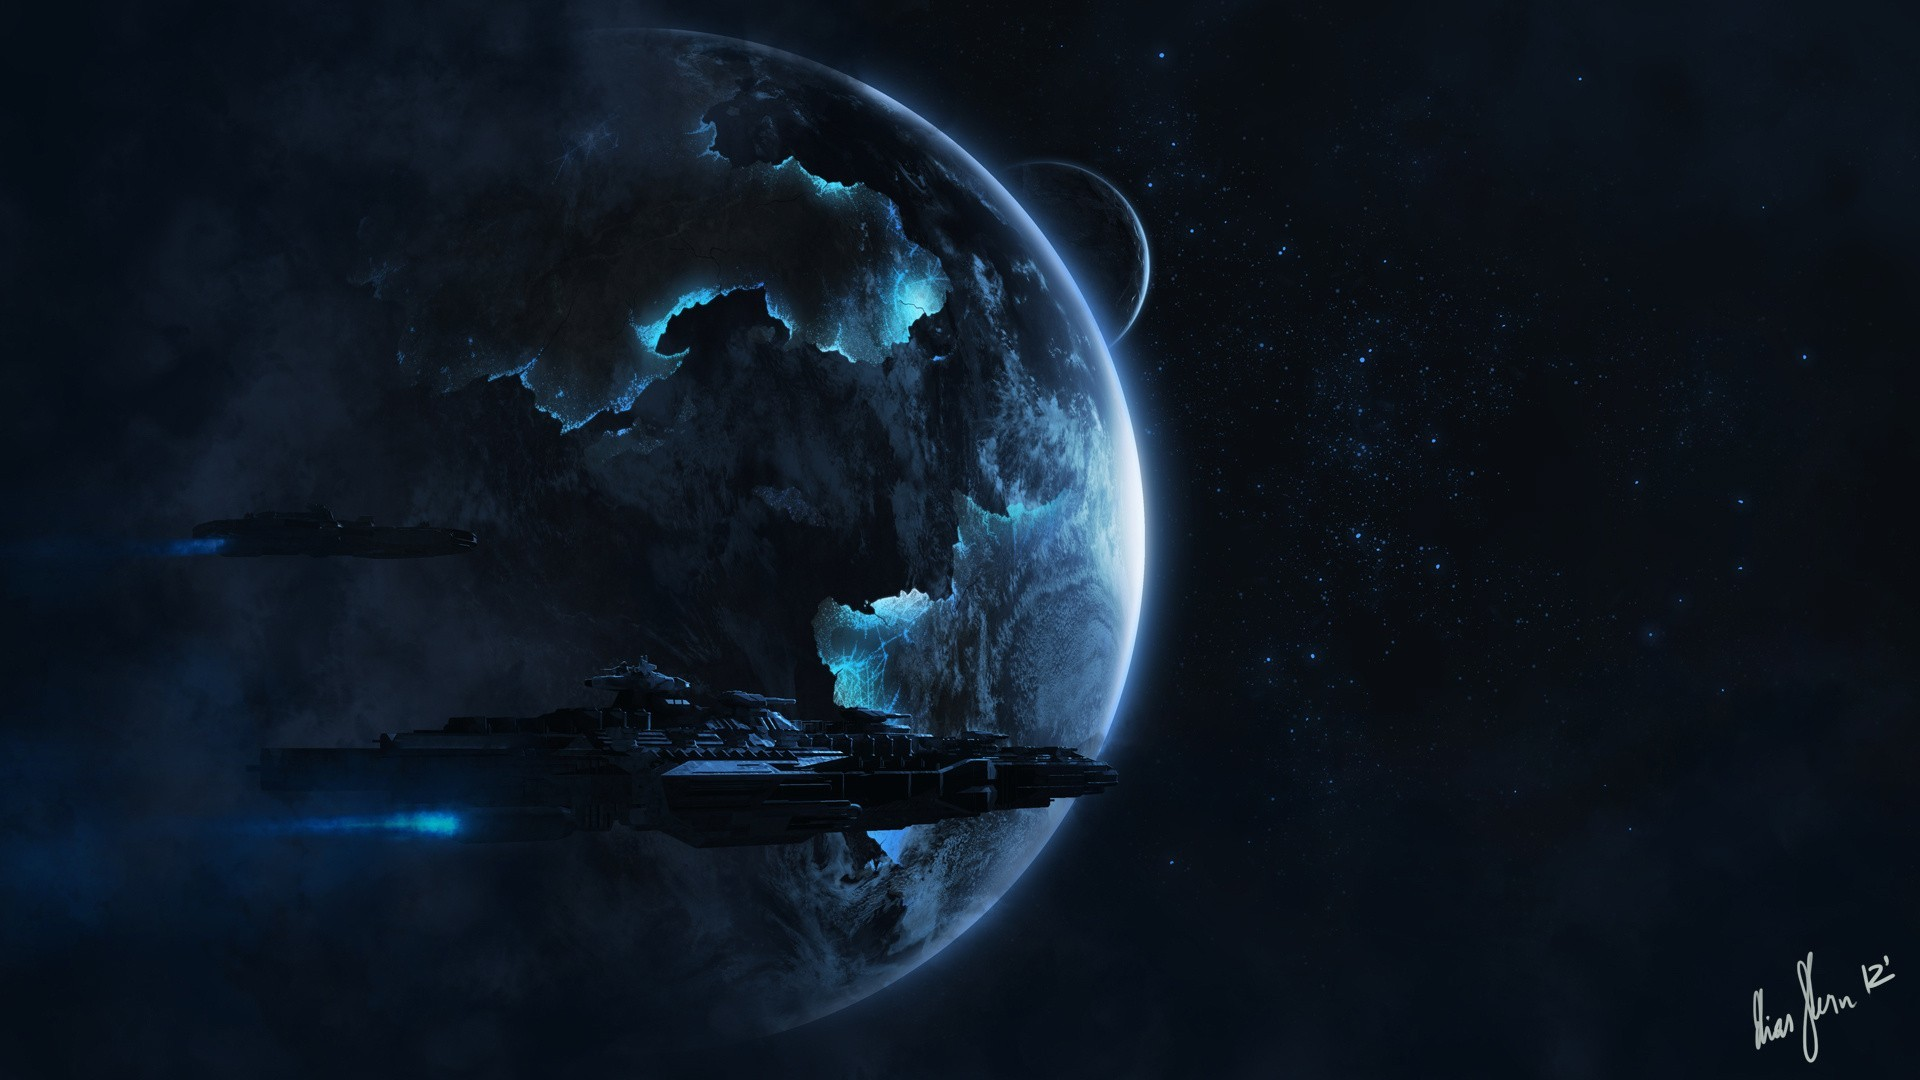 1920x1080 - Spaceship Wallpapers 12